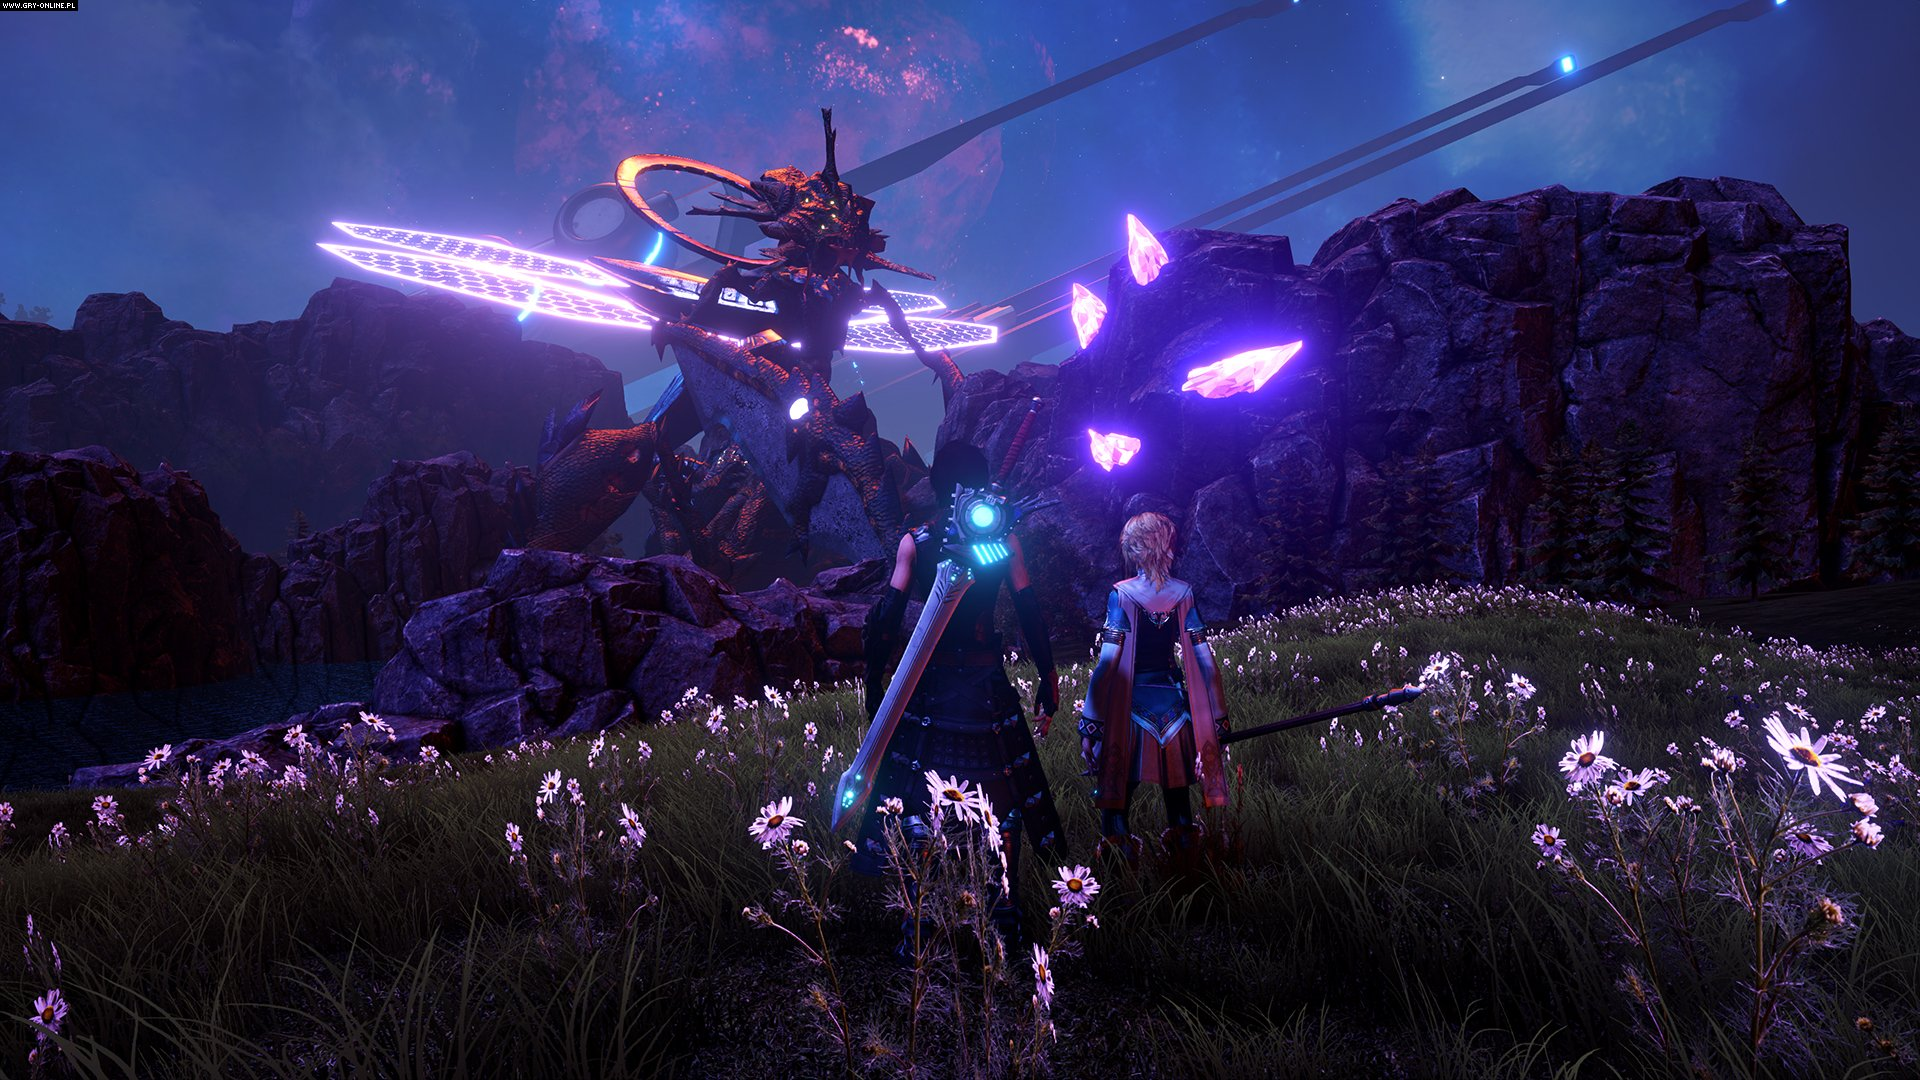 Edge of Eternity PC, PSV, PS4, XONE, WiiU Games Image 1/31, Midgar Studio